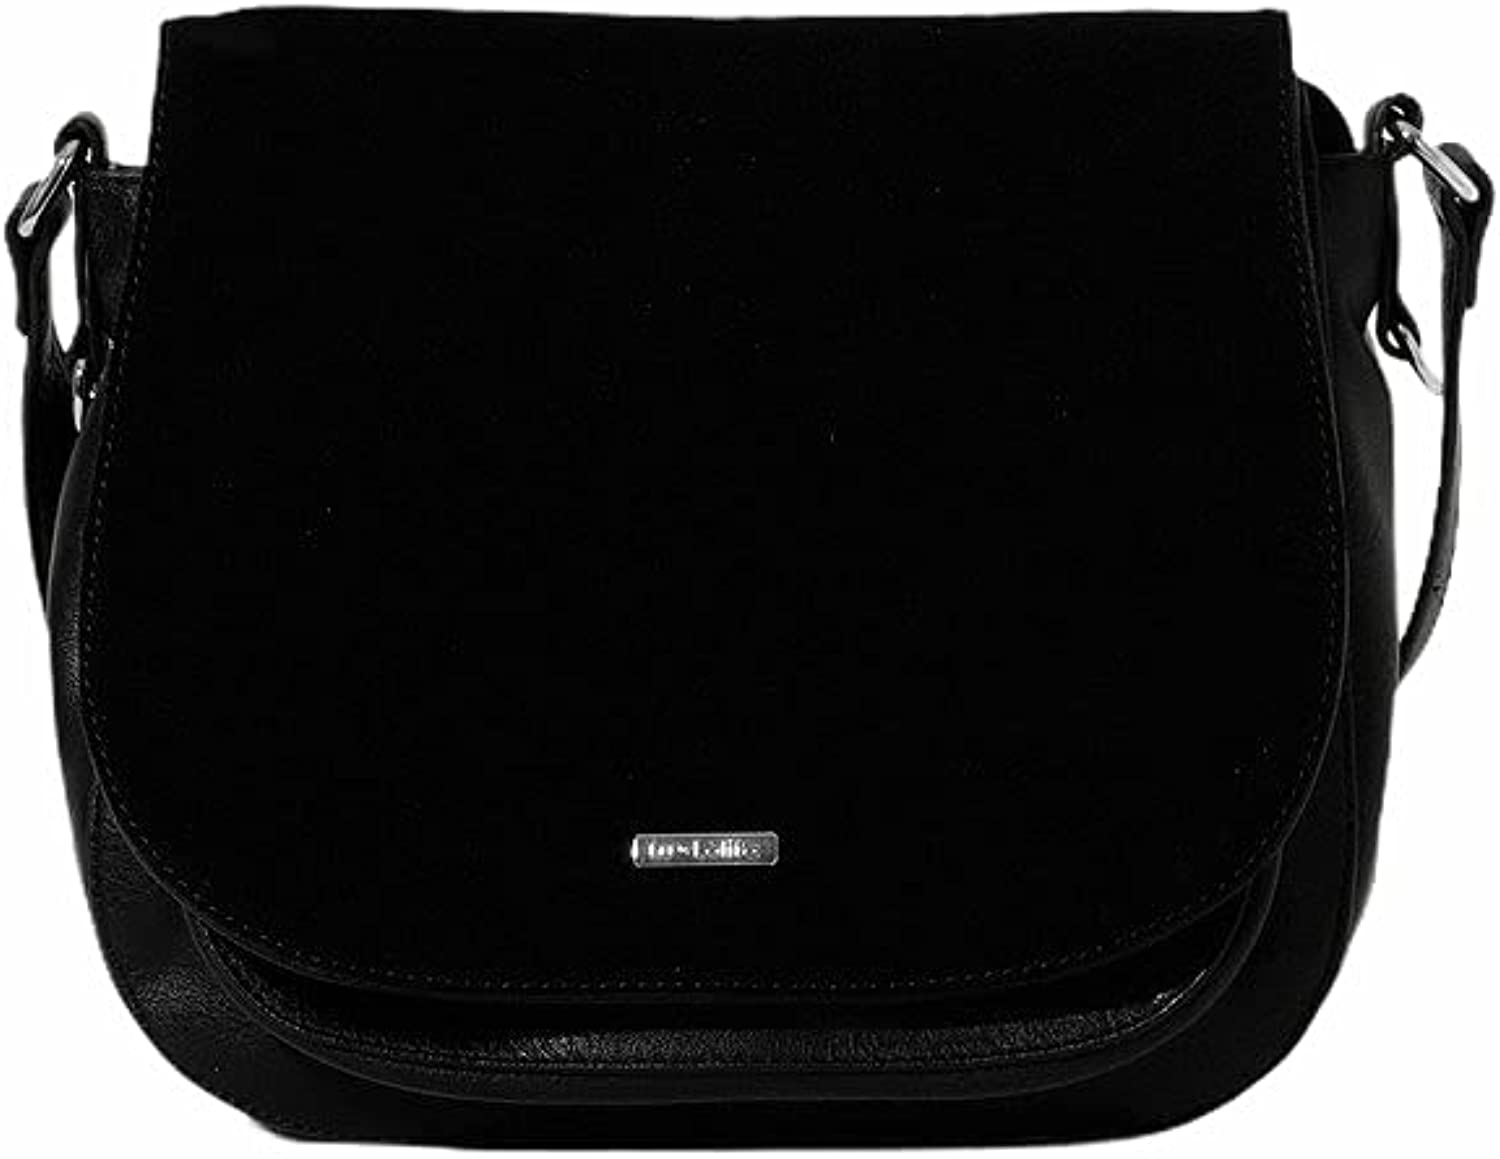 Crossbody Saddle Bag with Suede One Size Black